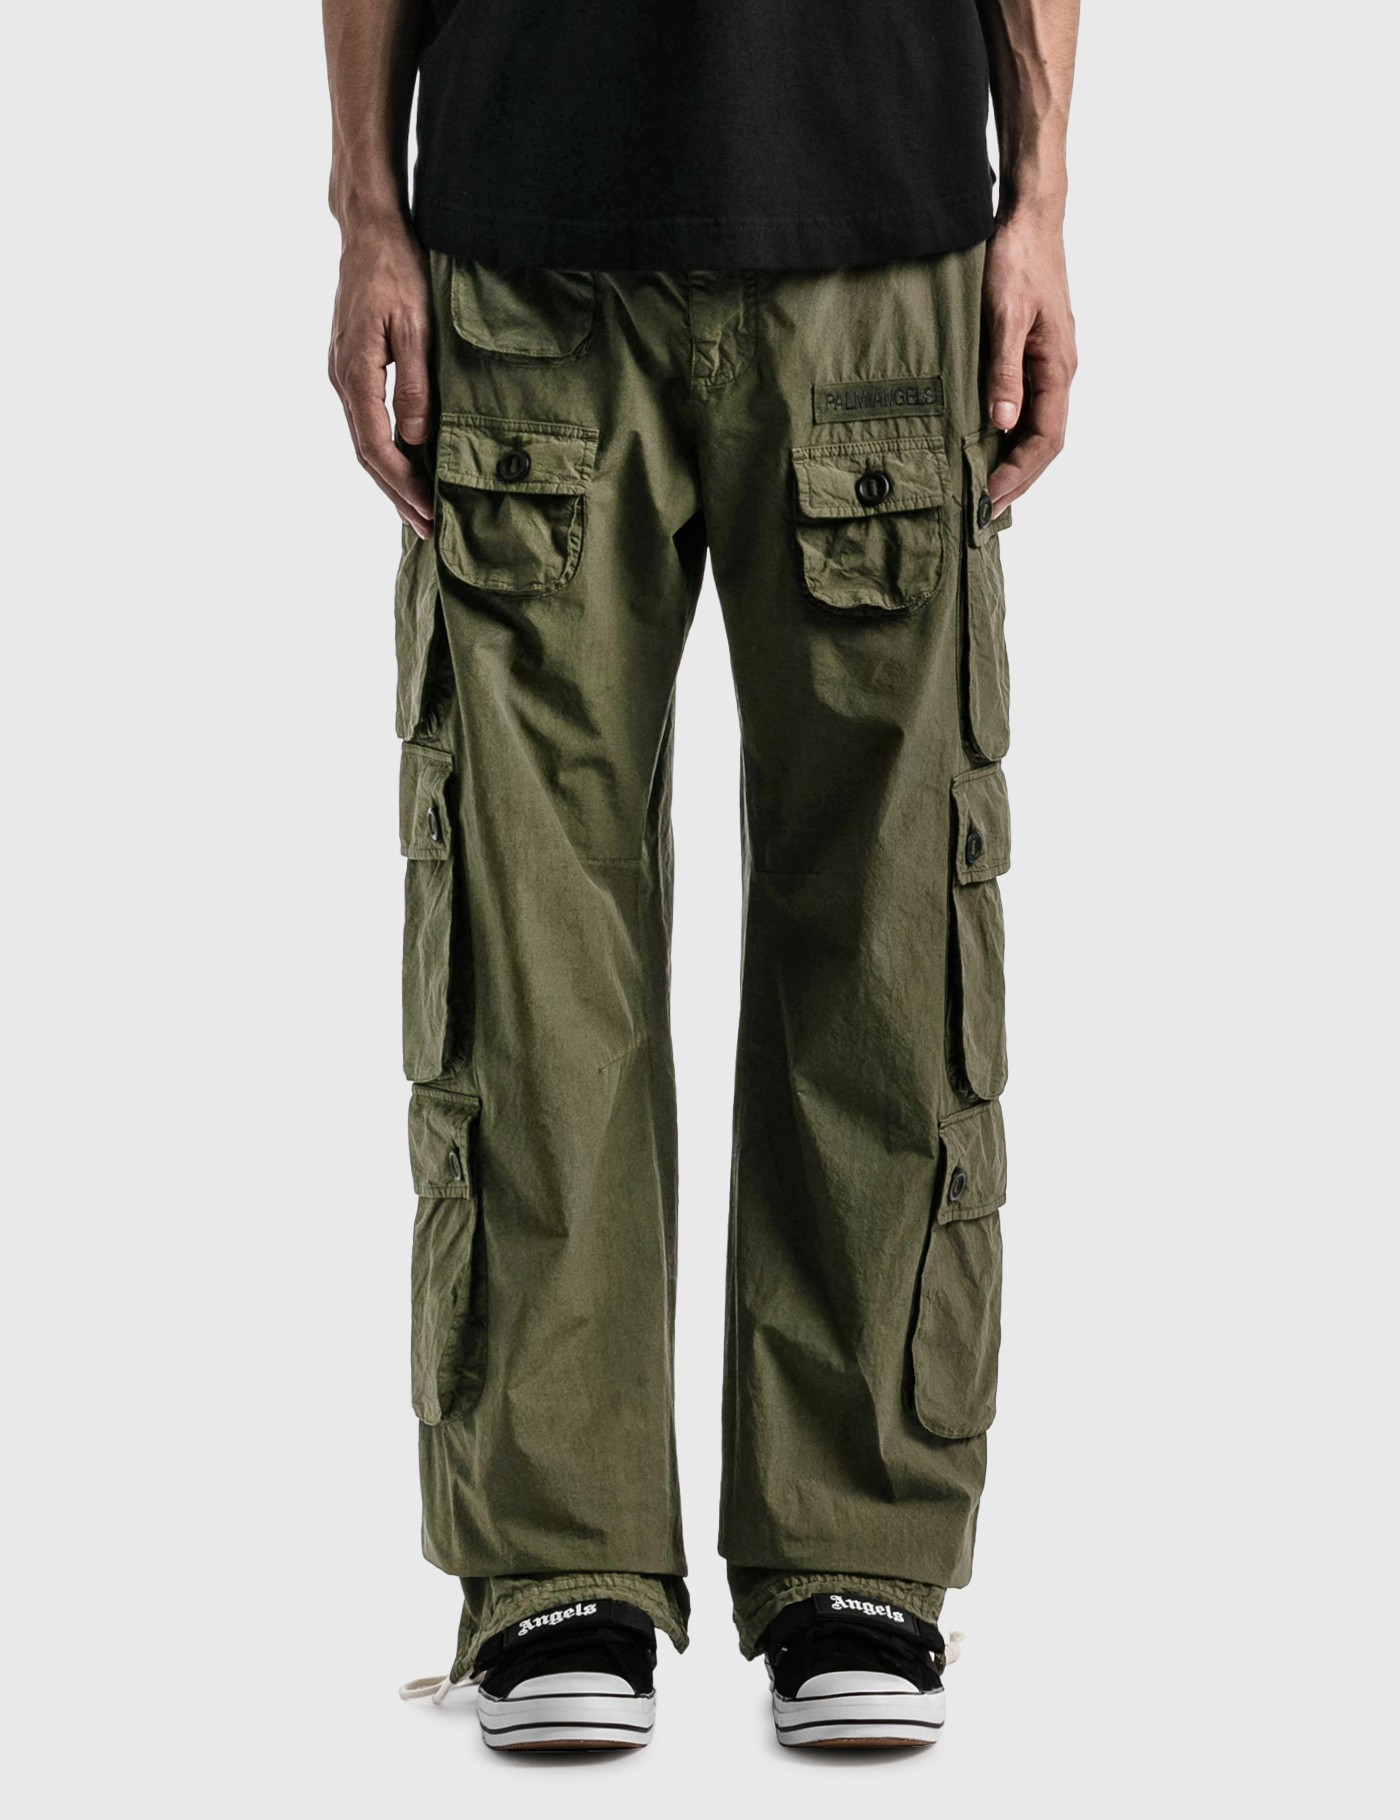 Palm Angels Cottons FULL POCKETS CARGO PANTS